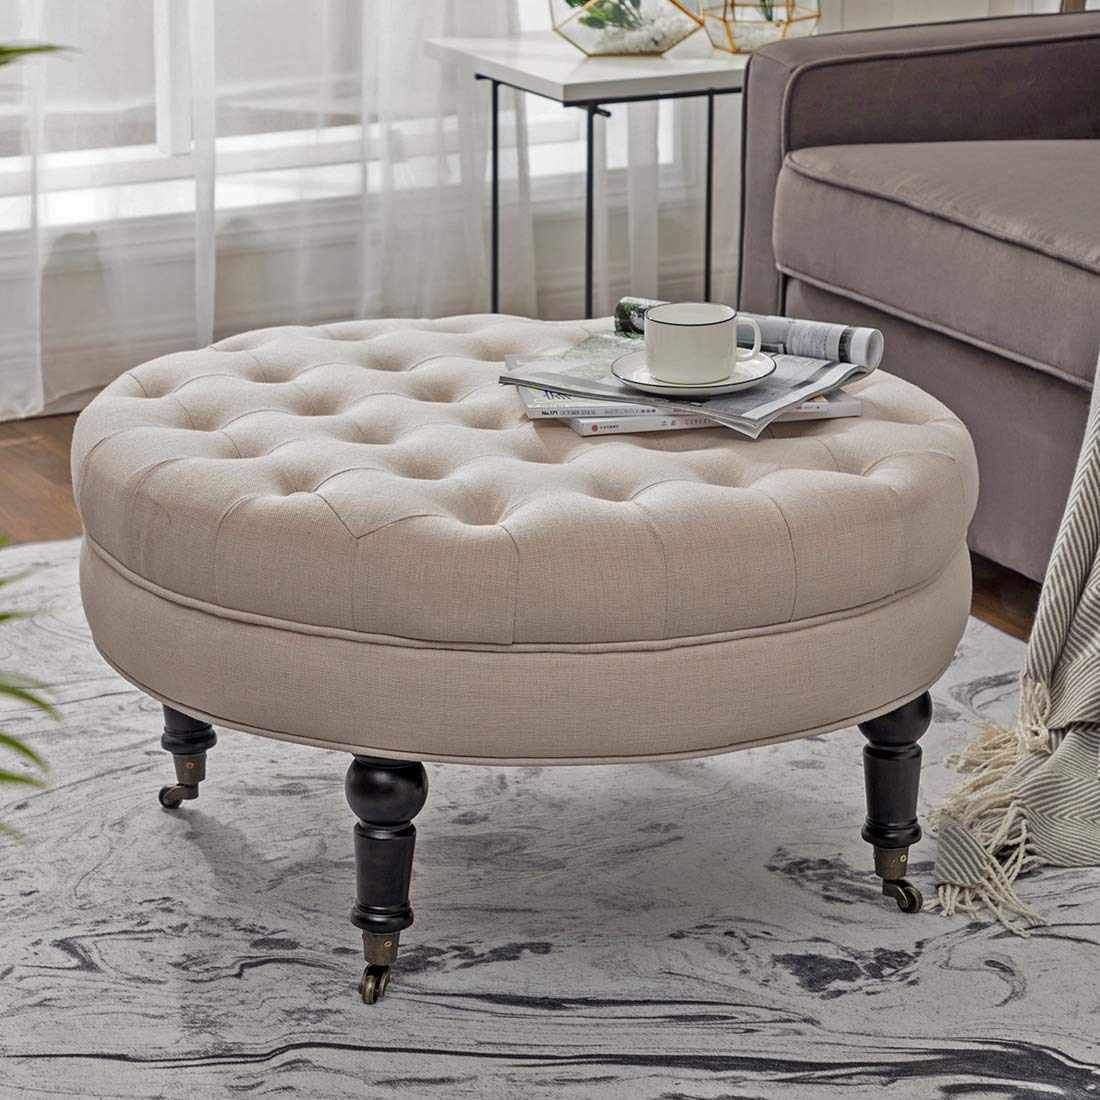 Simhoo Large Round Tufted Lined Ottoman Coffee Table with Casters